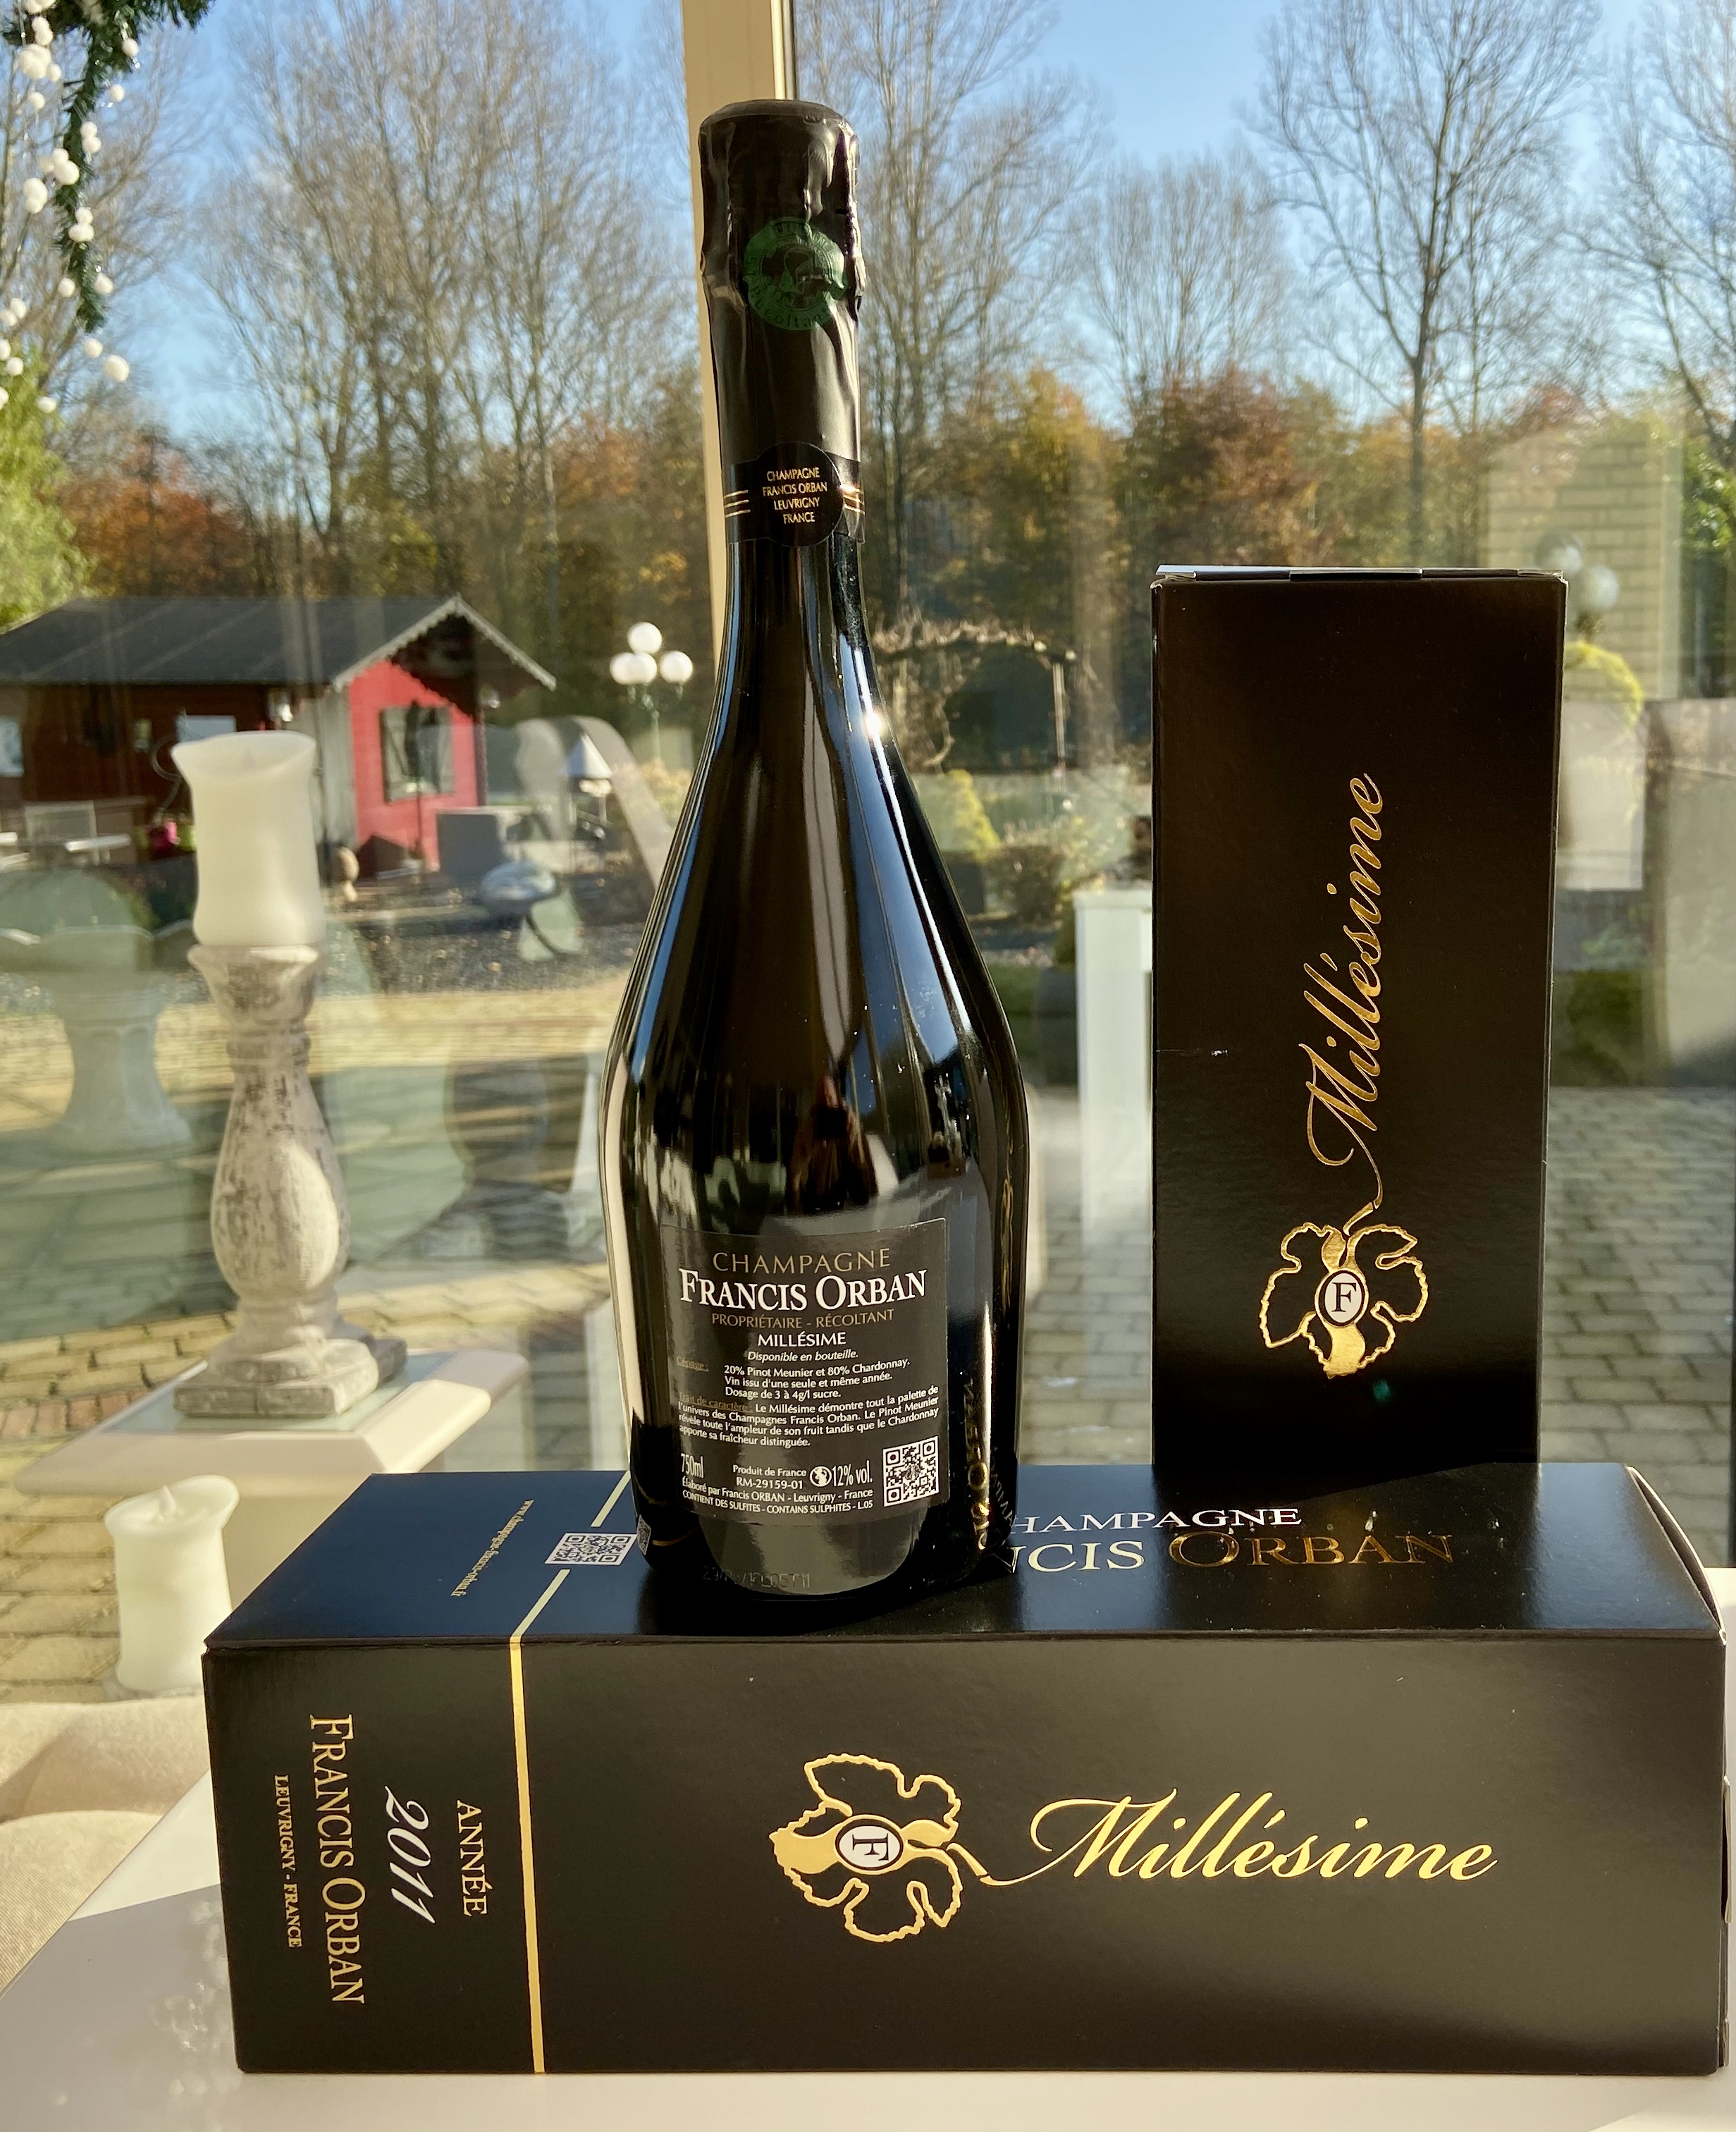 Onze December Special Champagne Francis Orban